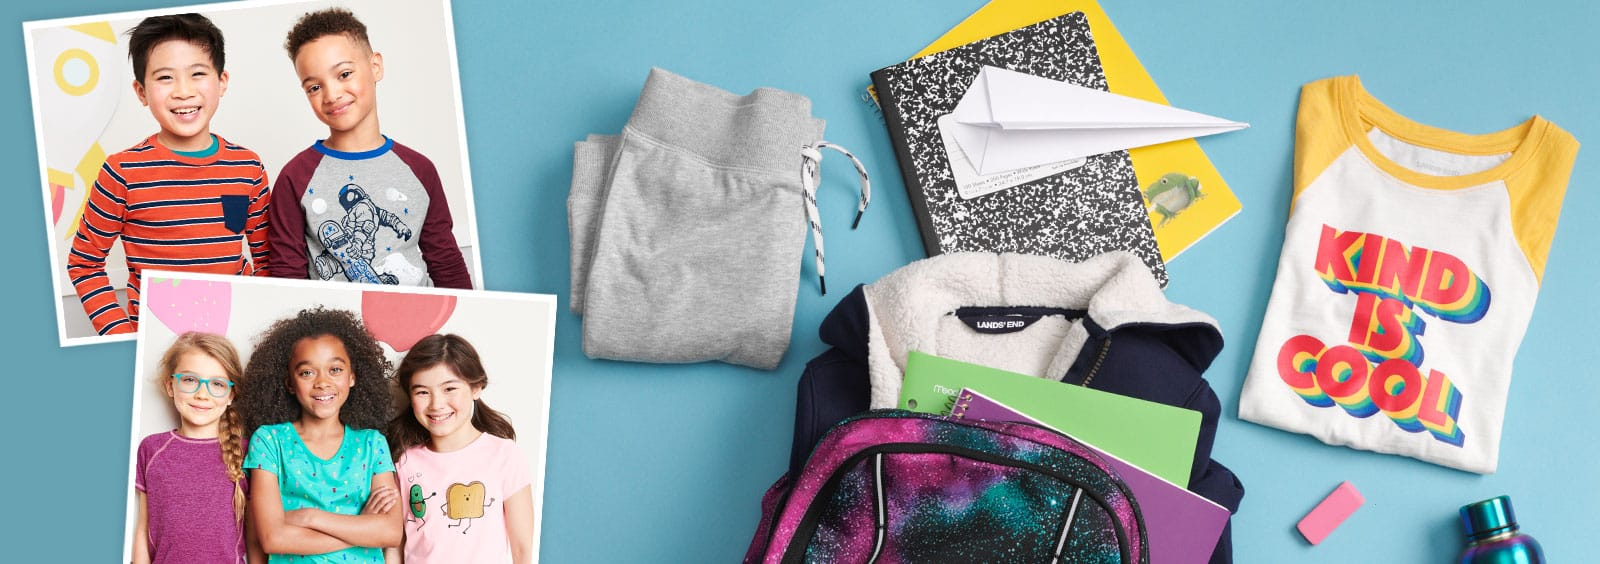 The Beginner's Guide to Back-to-Preschool Shopping | Lands' End